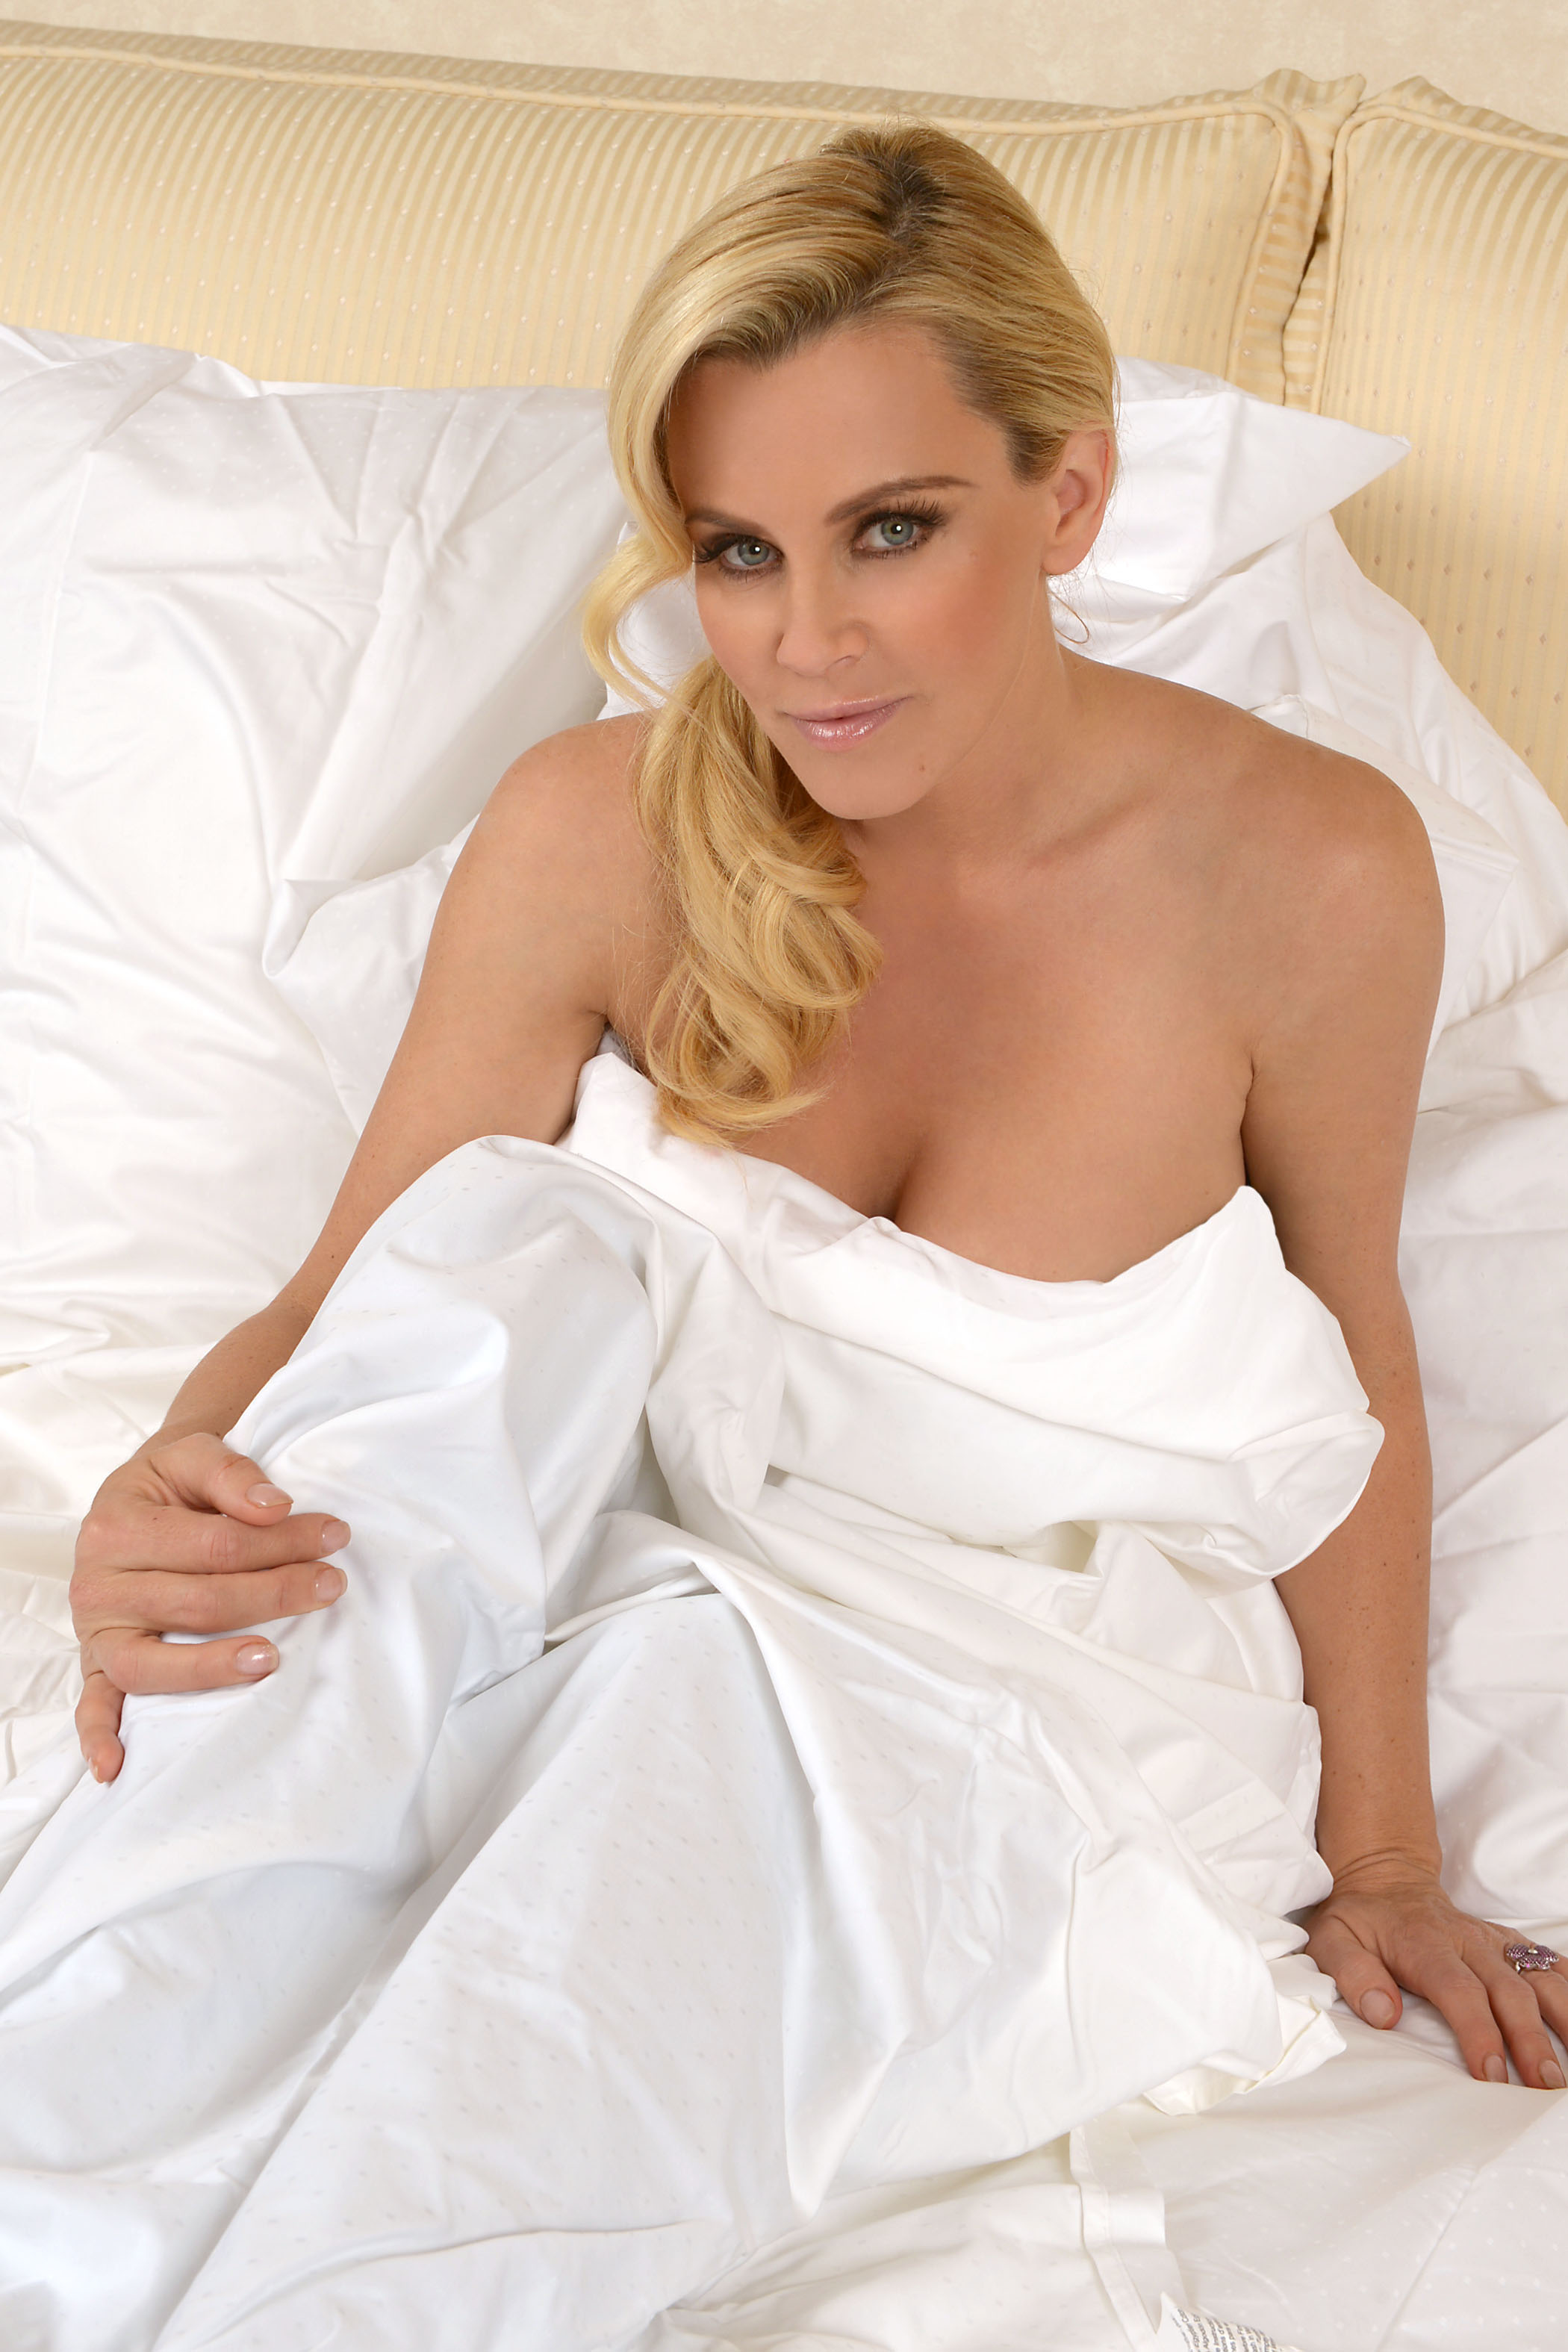 Jenny Mccarthy Porn Video jenny mccarthy in the christmas spirit photshootmichael